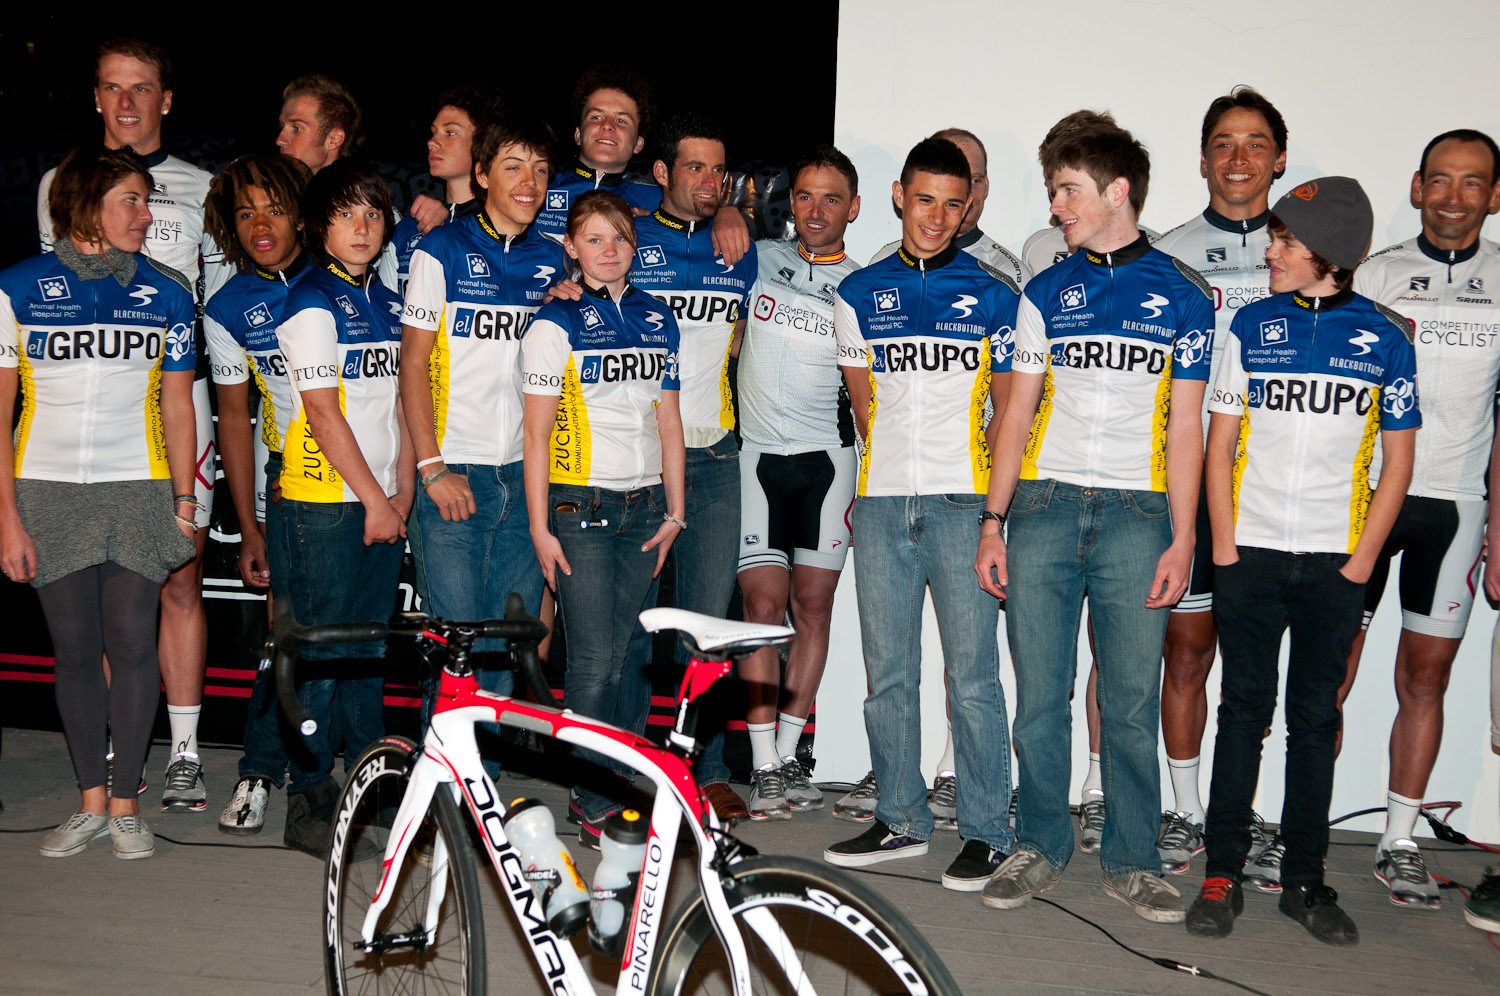 Young riders from El Grupo cycling share time on stage with the pro riders at the official Team presentation. All proceeds from the event benefited El Grupo, a Tucson-based youth cycling program with the mission of exposing local at-risk and undeserved teens to the sport and discipline of bike racing. 